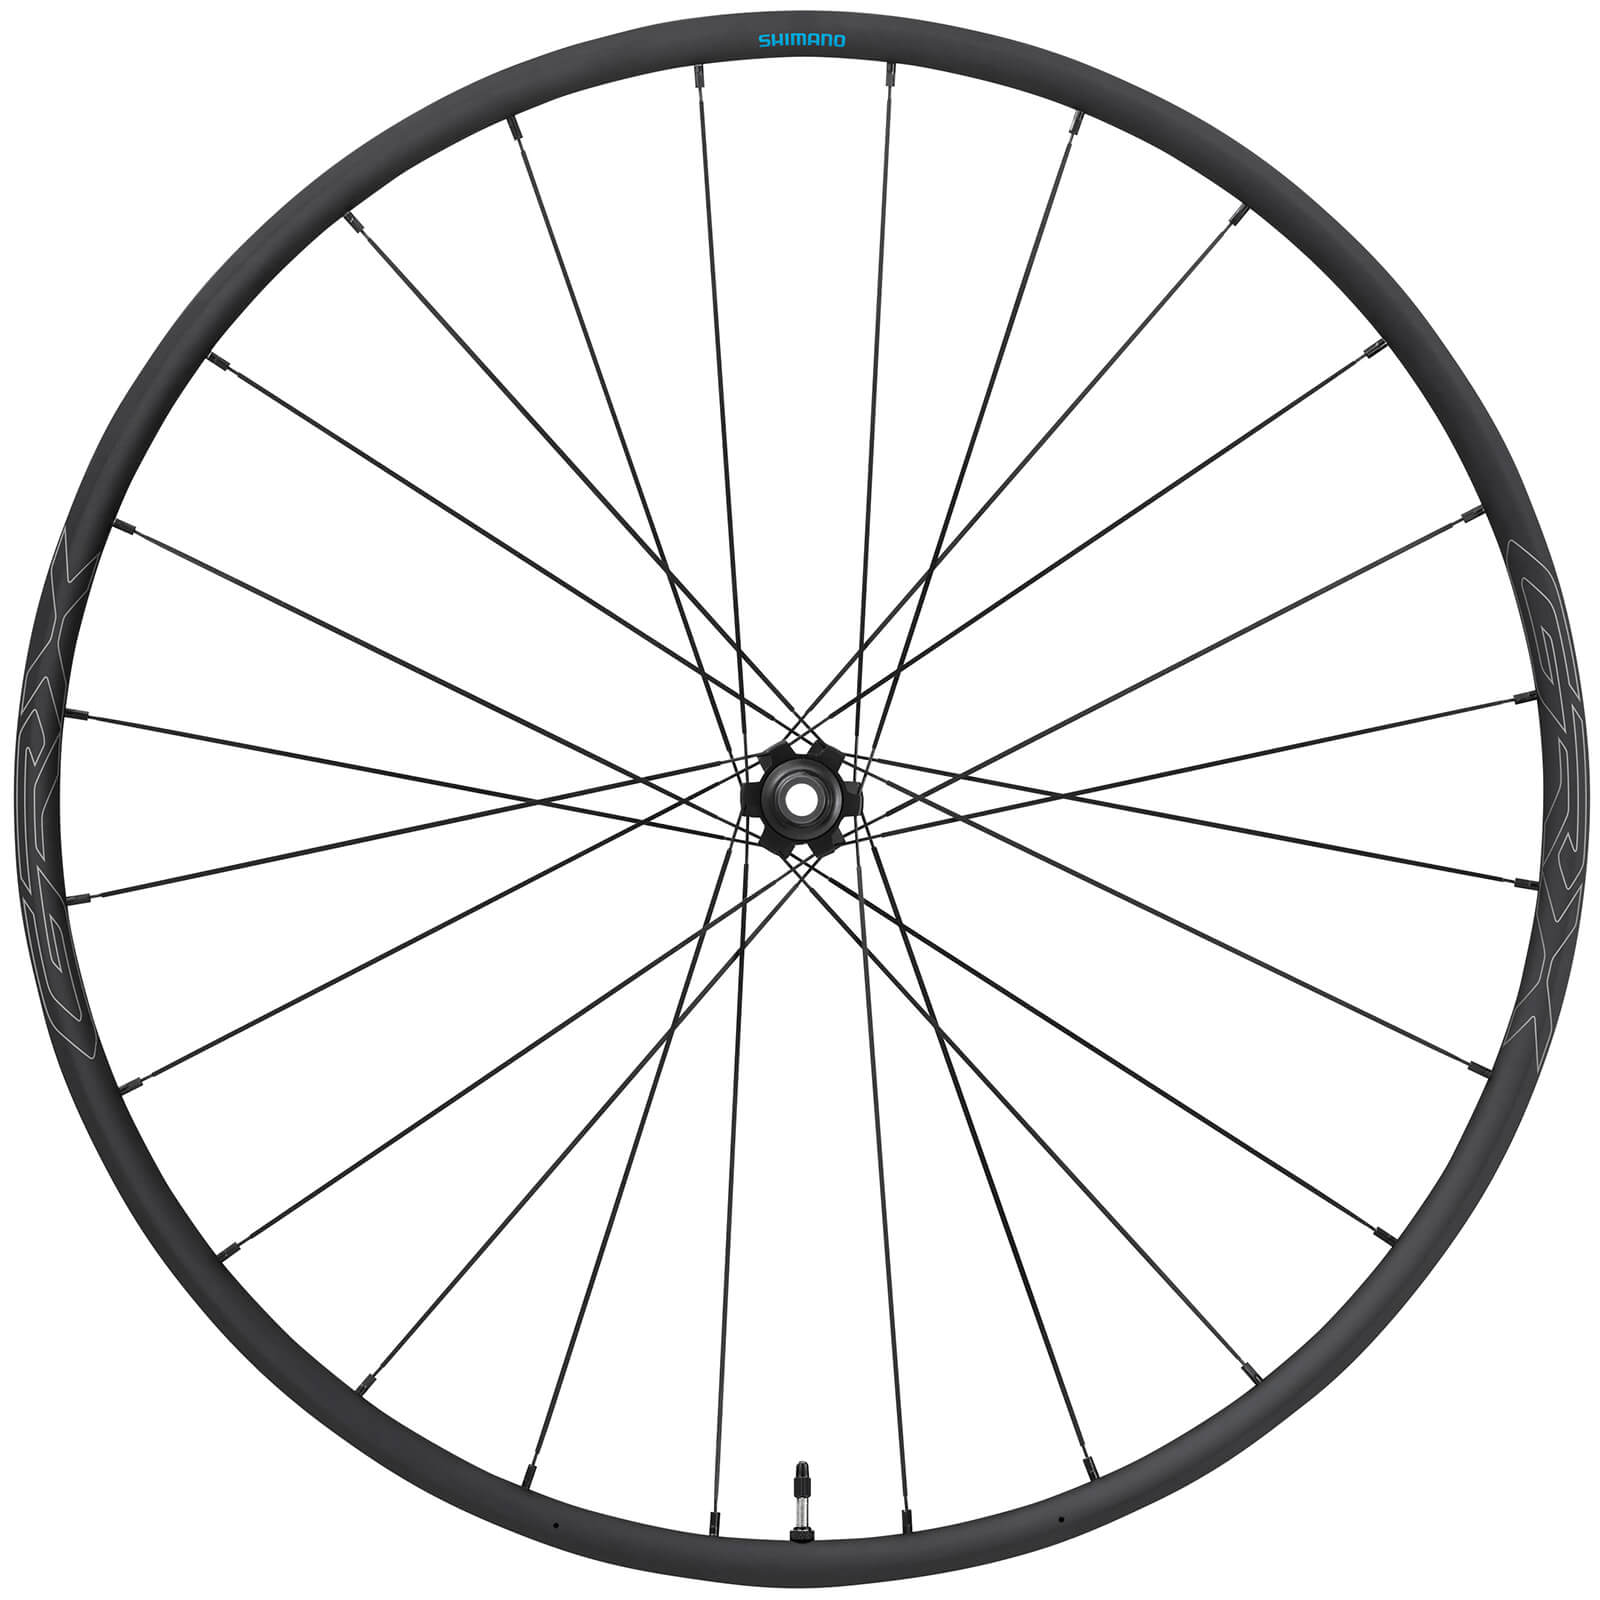 Shimano RX570 Tubeless Ready Clincher 700c Wheel - Vorder